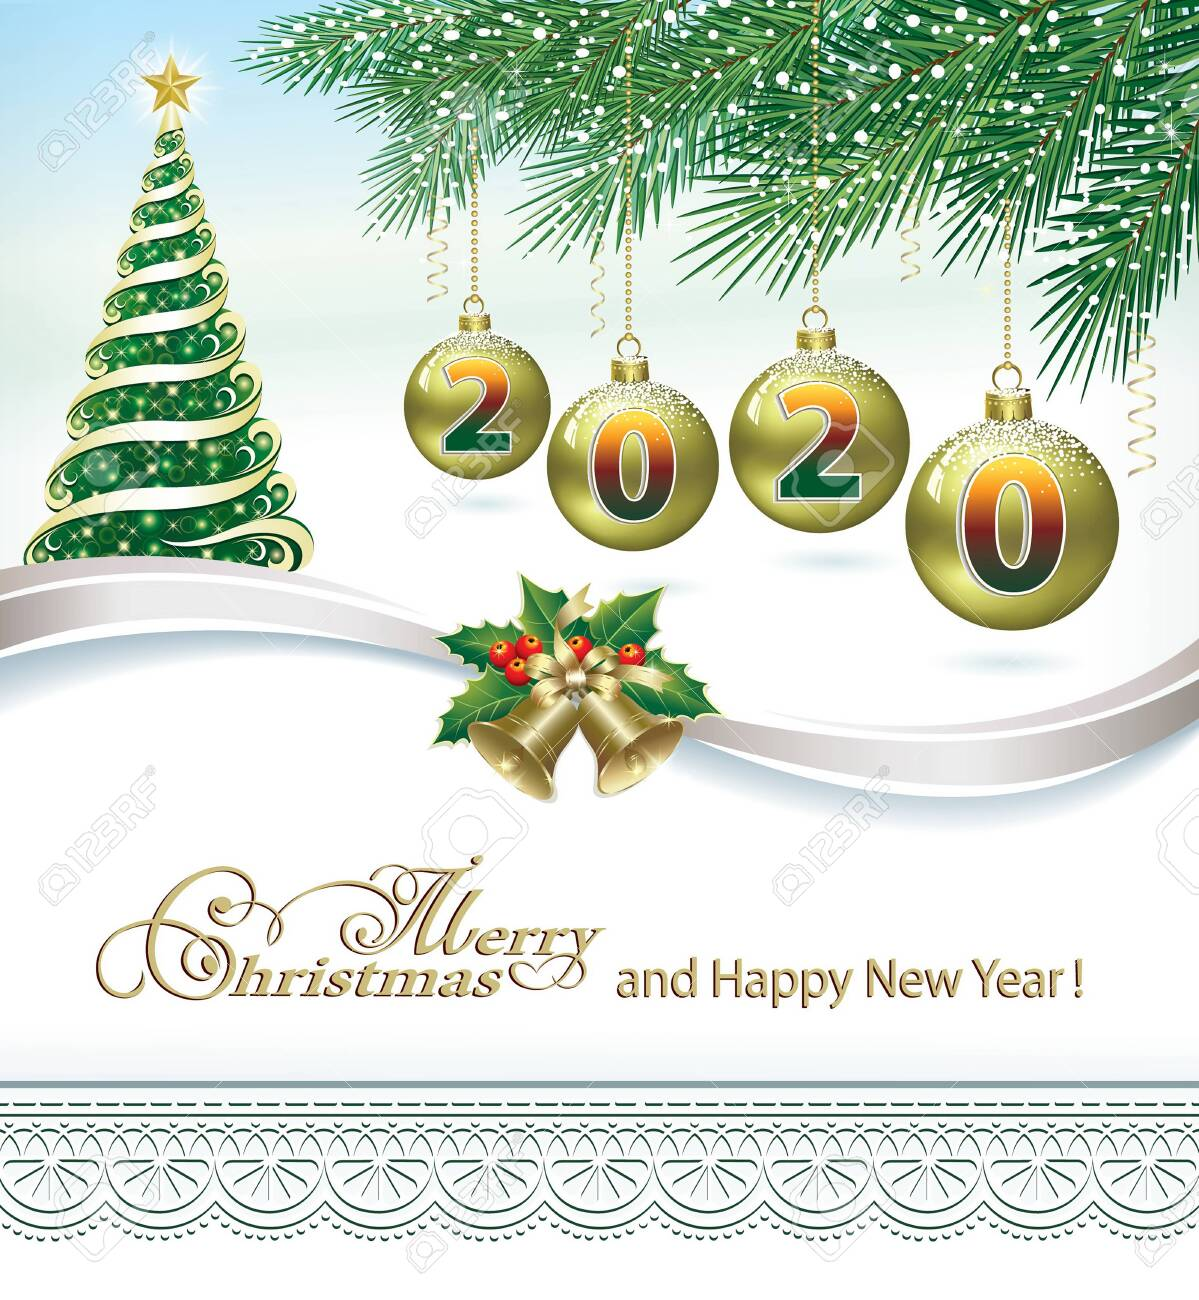 Merry Christmast and Happy New Year 2020. Christmas tree